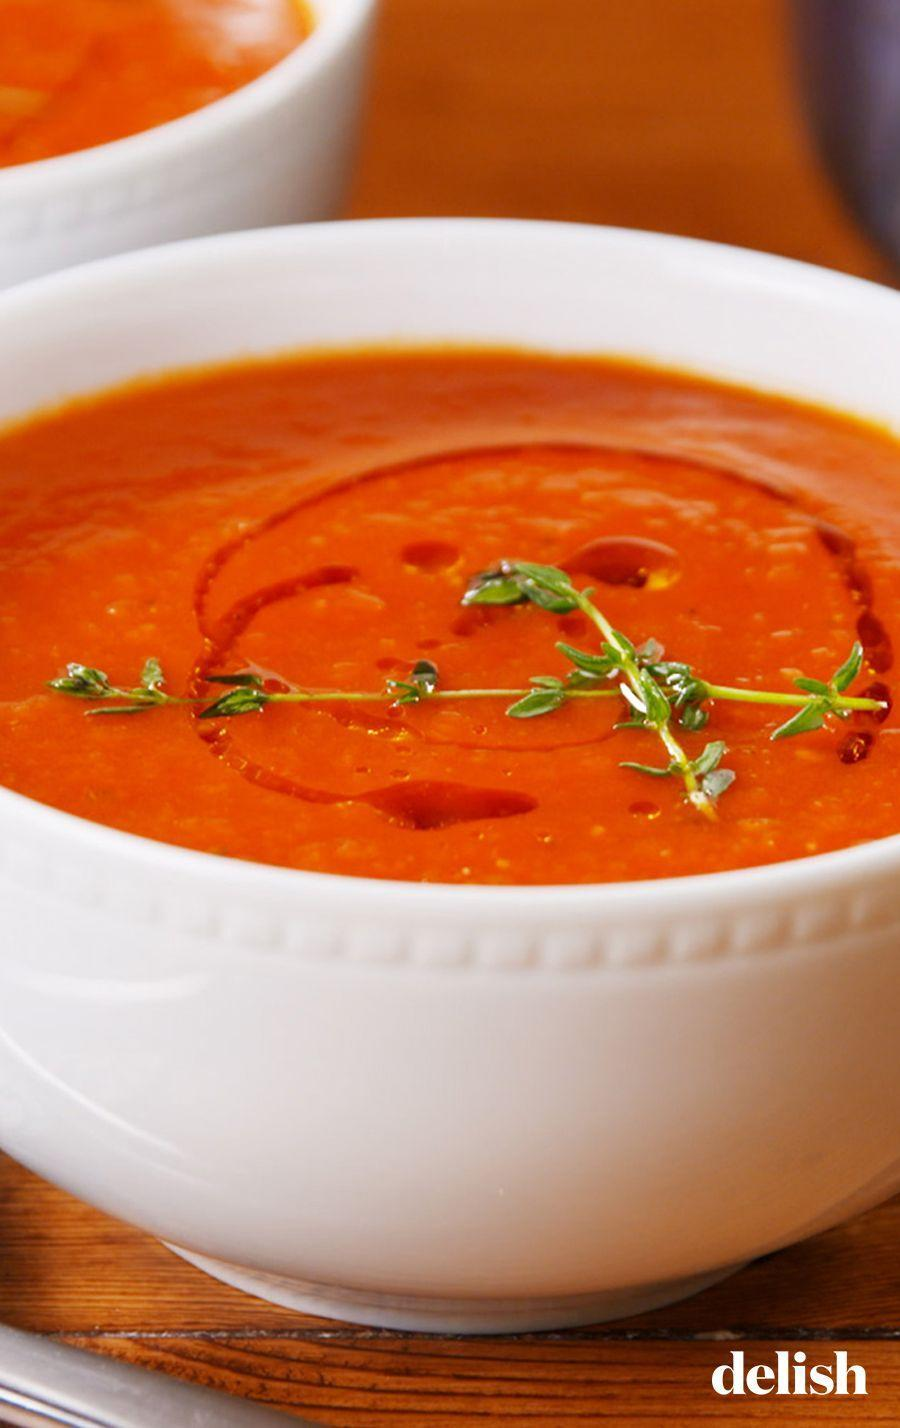 "<p>There's really nothing more comforting than a steaming hot bowl of tomato soup. </p><p>Get the recipe from <a href=""https://www.delish.com/cooking/recipe-ideas/a23513895/classic-tomato-soup-recipe/"" rel=""nofollow noopener"" target=""_blank"" data-ylk=""slk:Delish"" class=""link rapid-noclick-resp"">Delish</a>. </p>"